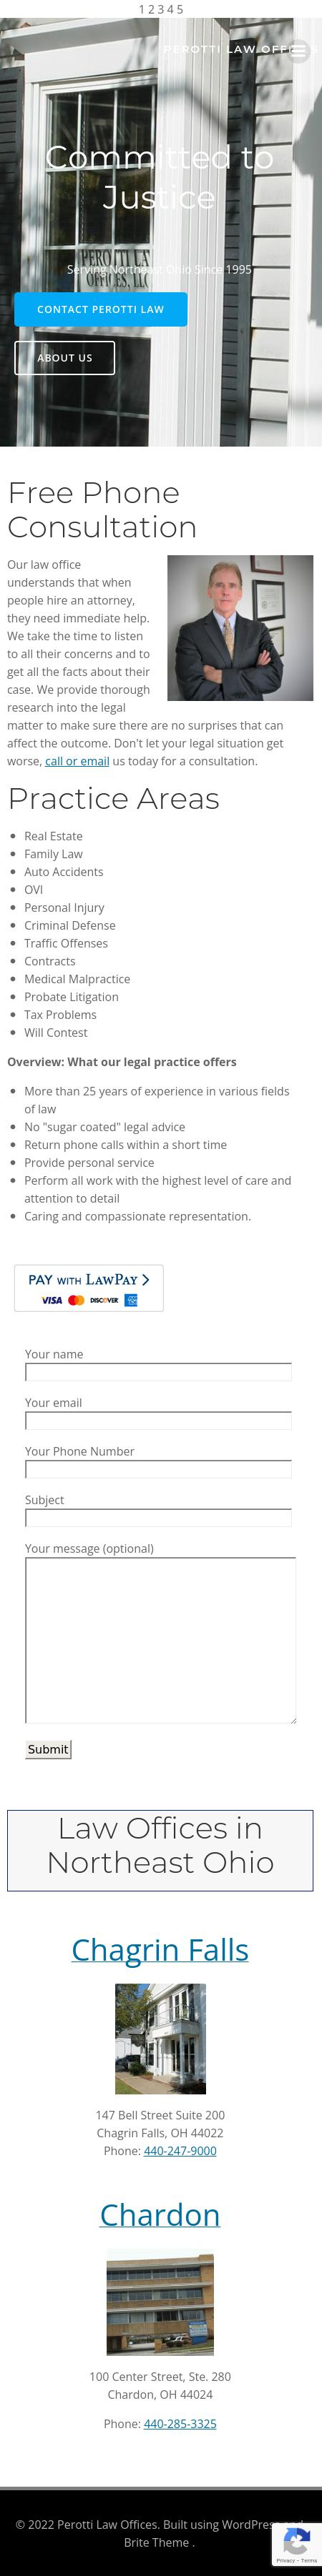 The Law Offices of Thomas I. Perotti - Cleveland OH Lawyers